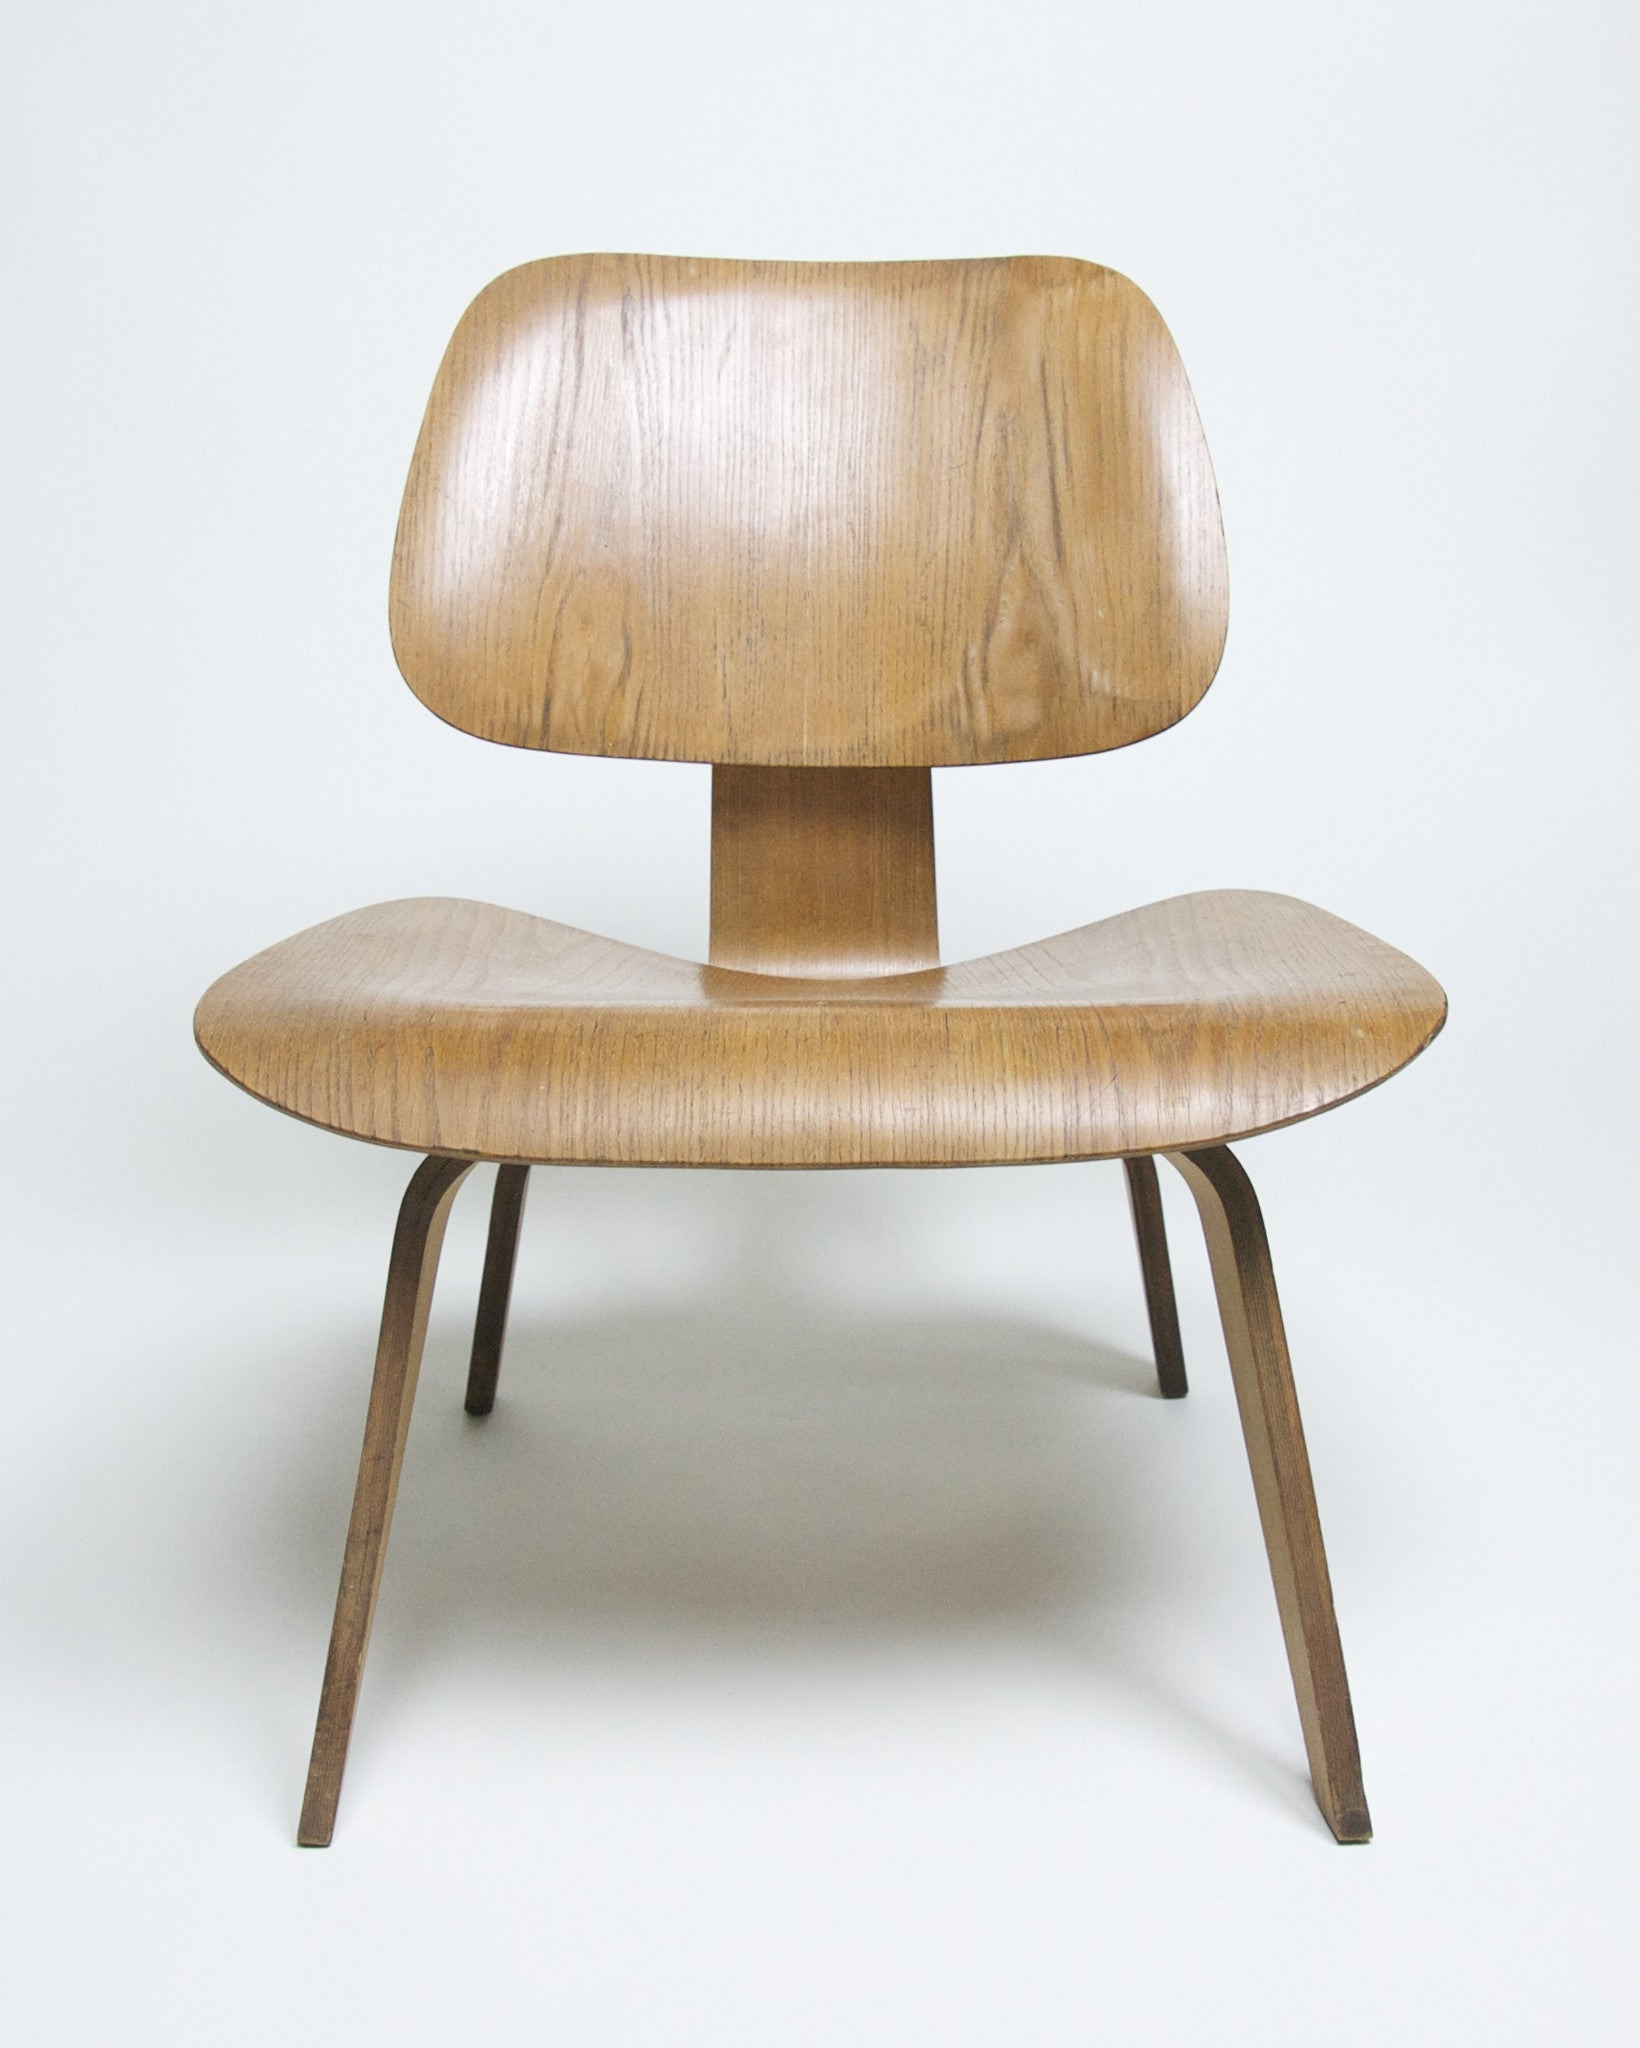 SOLD Eames Herman Miller Early 1950's LCW Plywood Lounge Chair Original Calico Ash